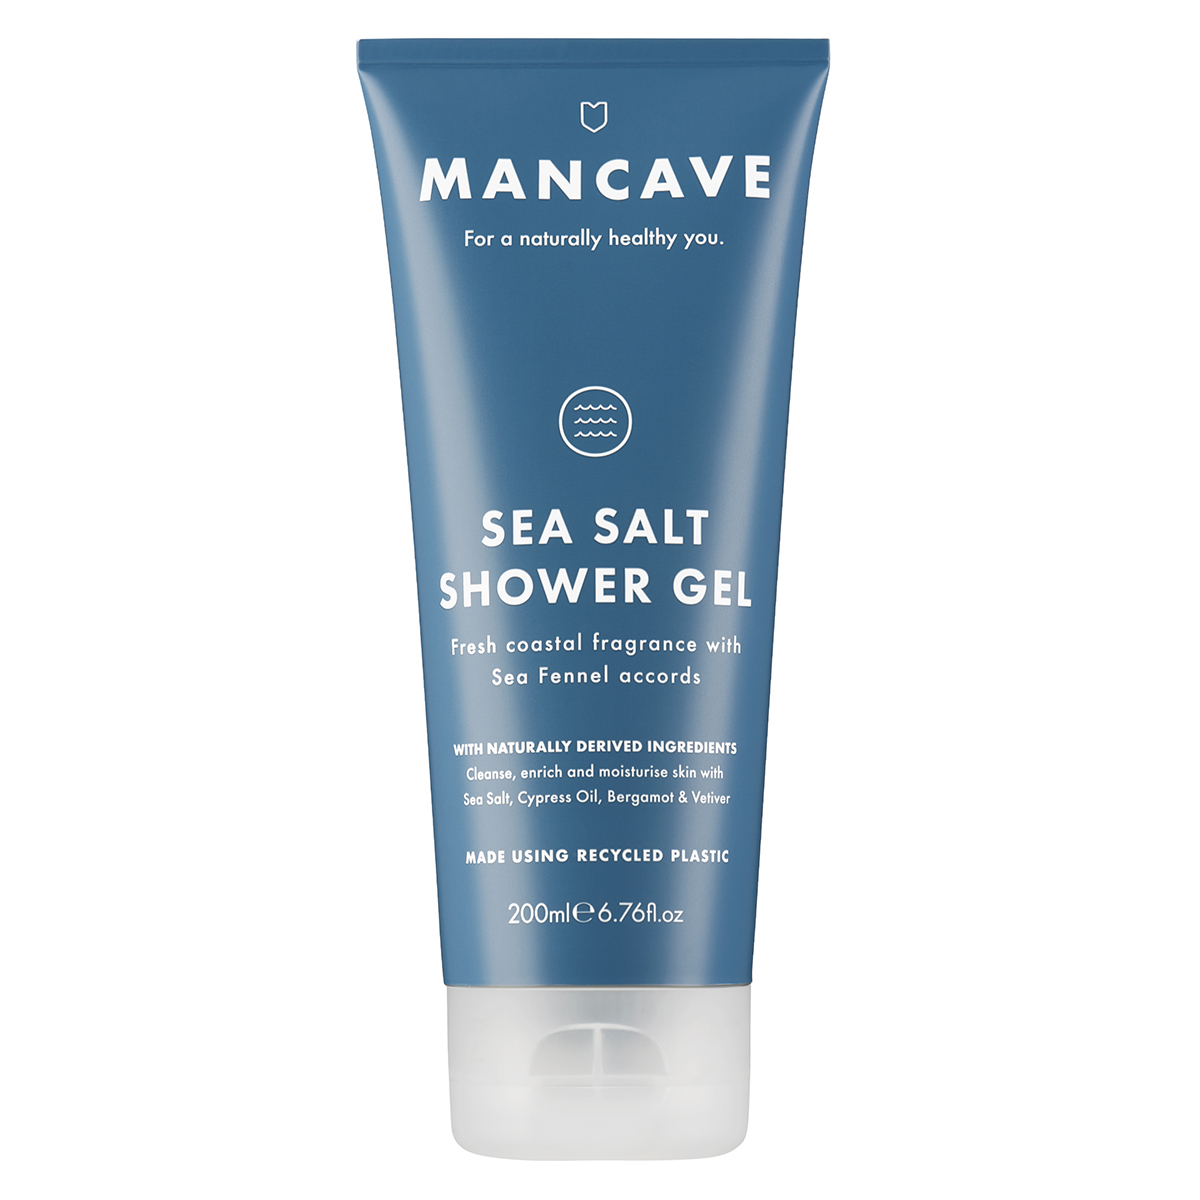 ManCave Sea Salt Shower Gel